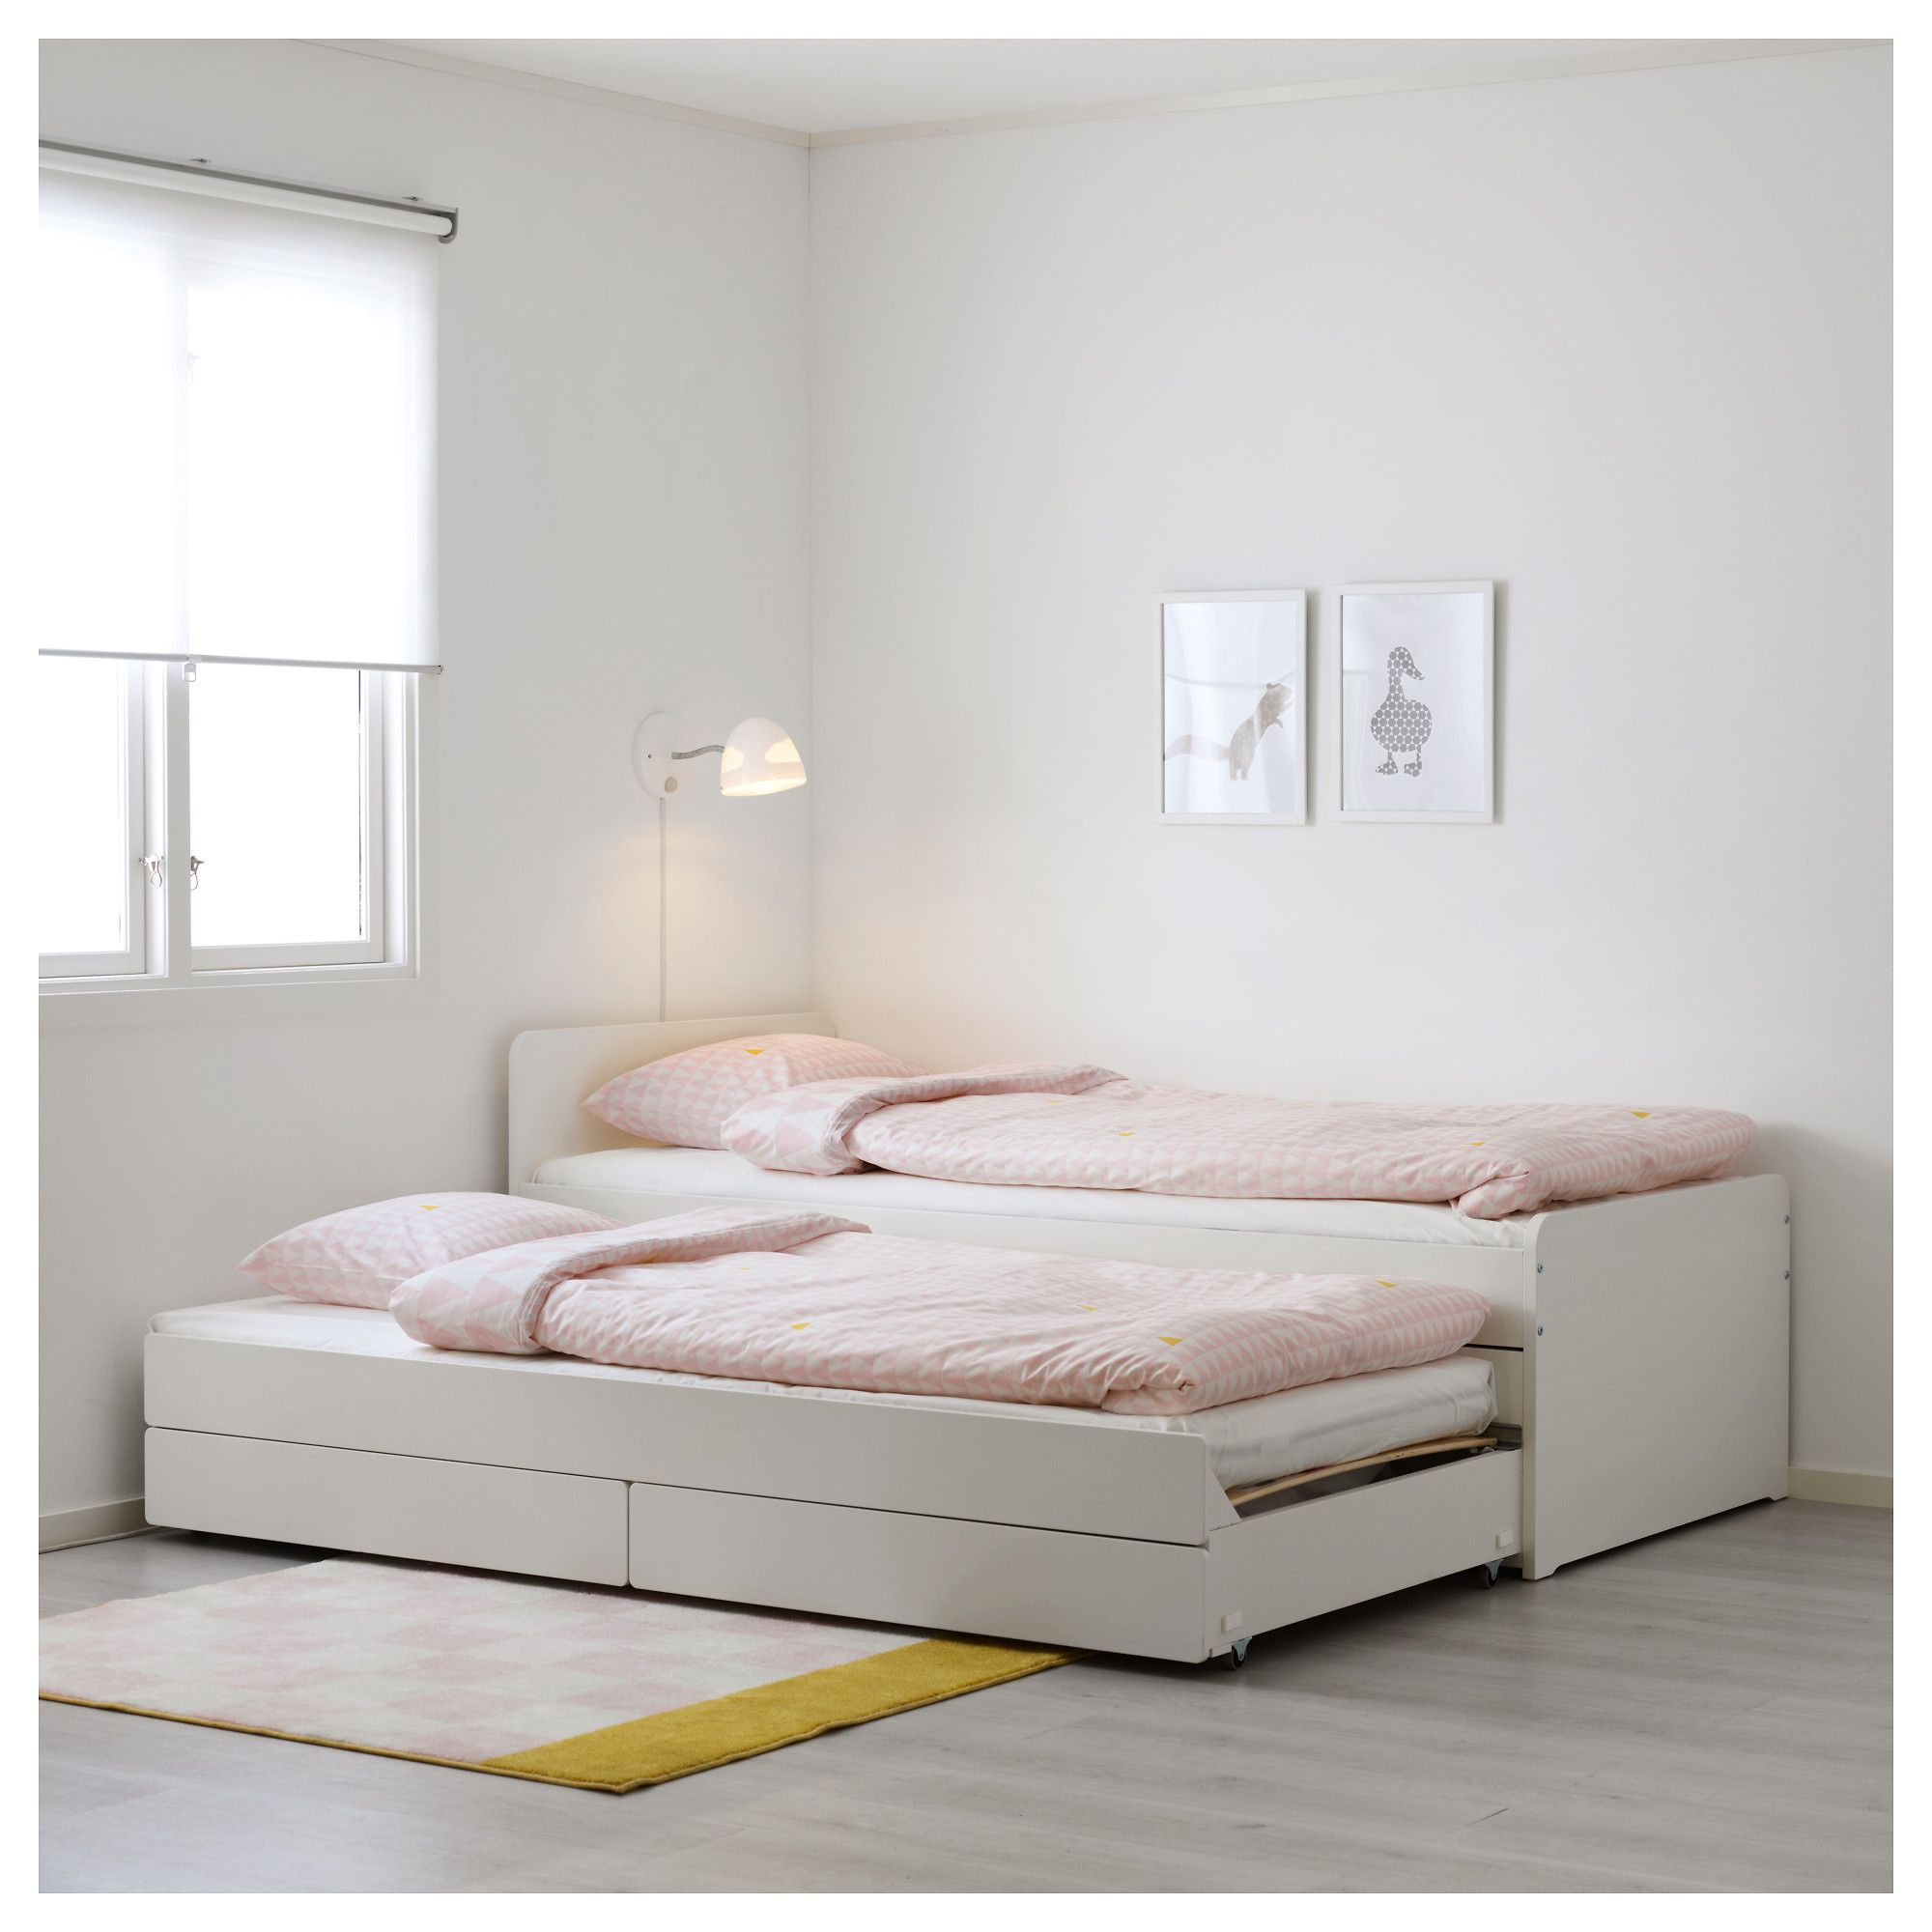 Peuterbed Ikea SlÄkt Bed Frame W Pull Out Bed Storage White Jaxon